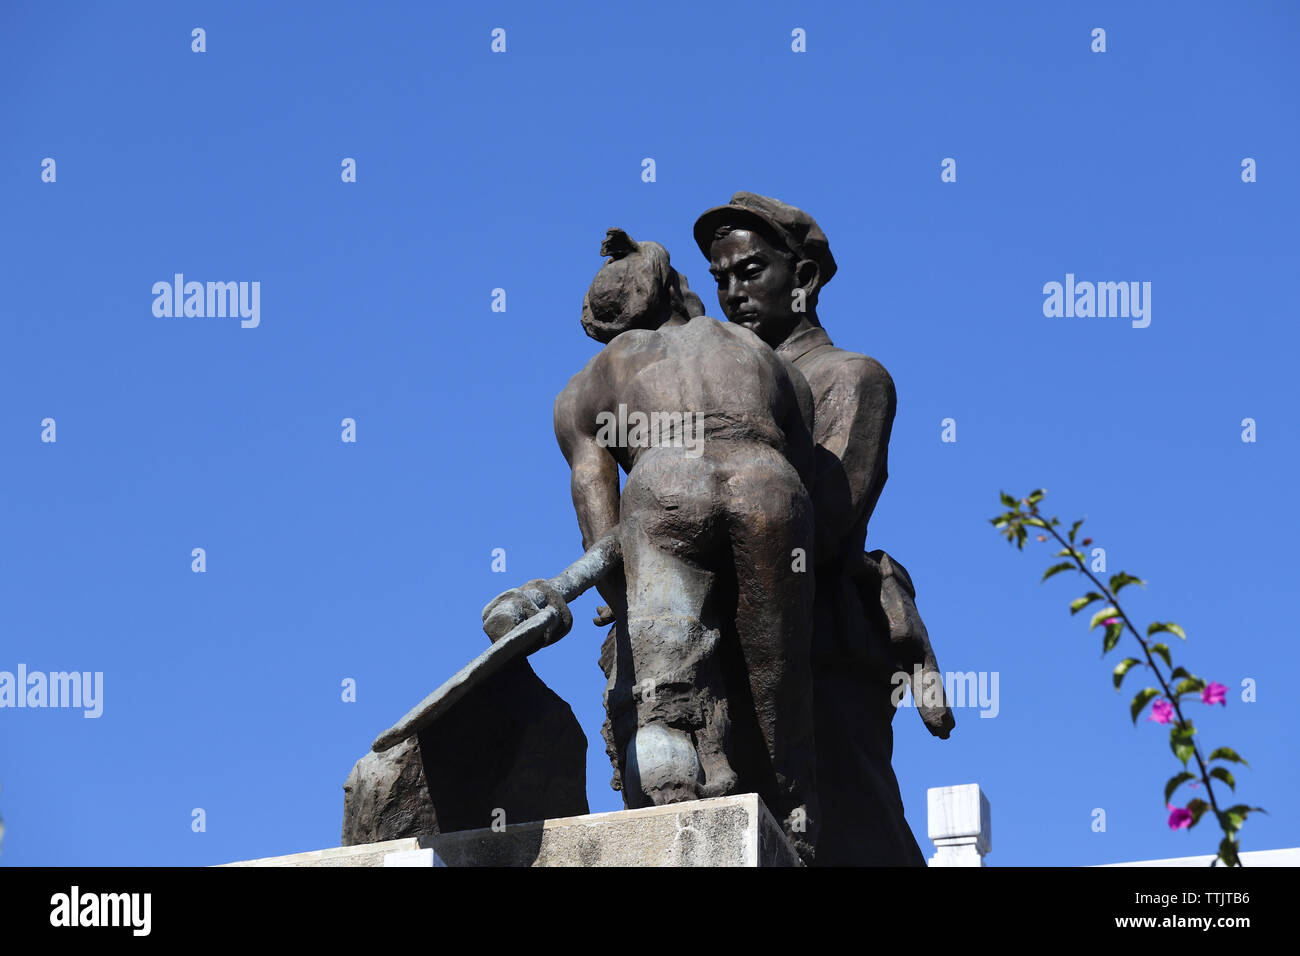 The Red Army's Long March Memorial Monument in Shigu, Yunnan, China - Stock Image